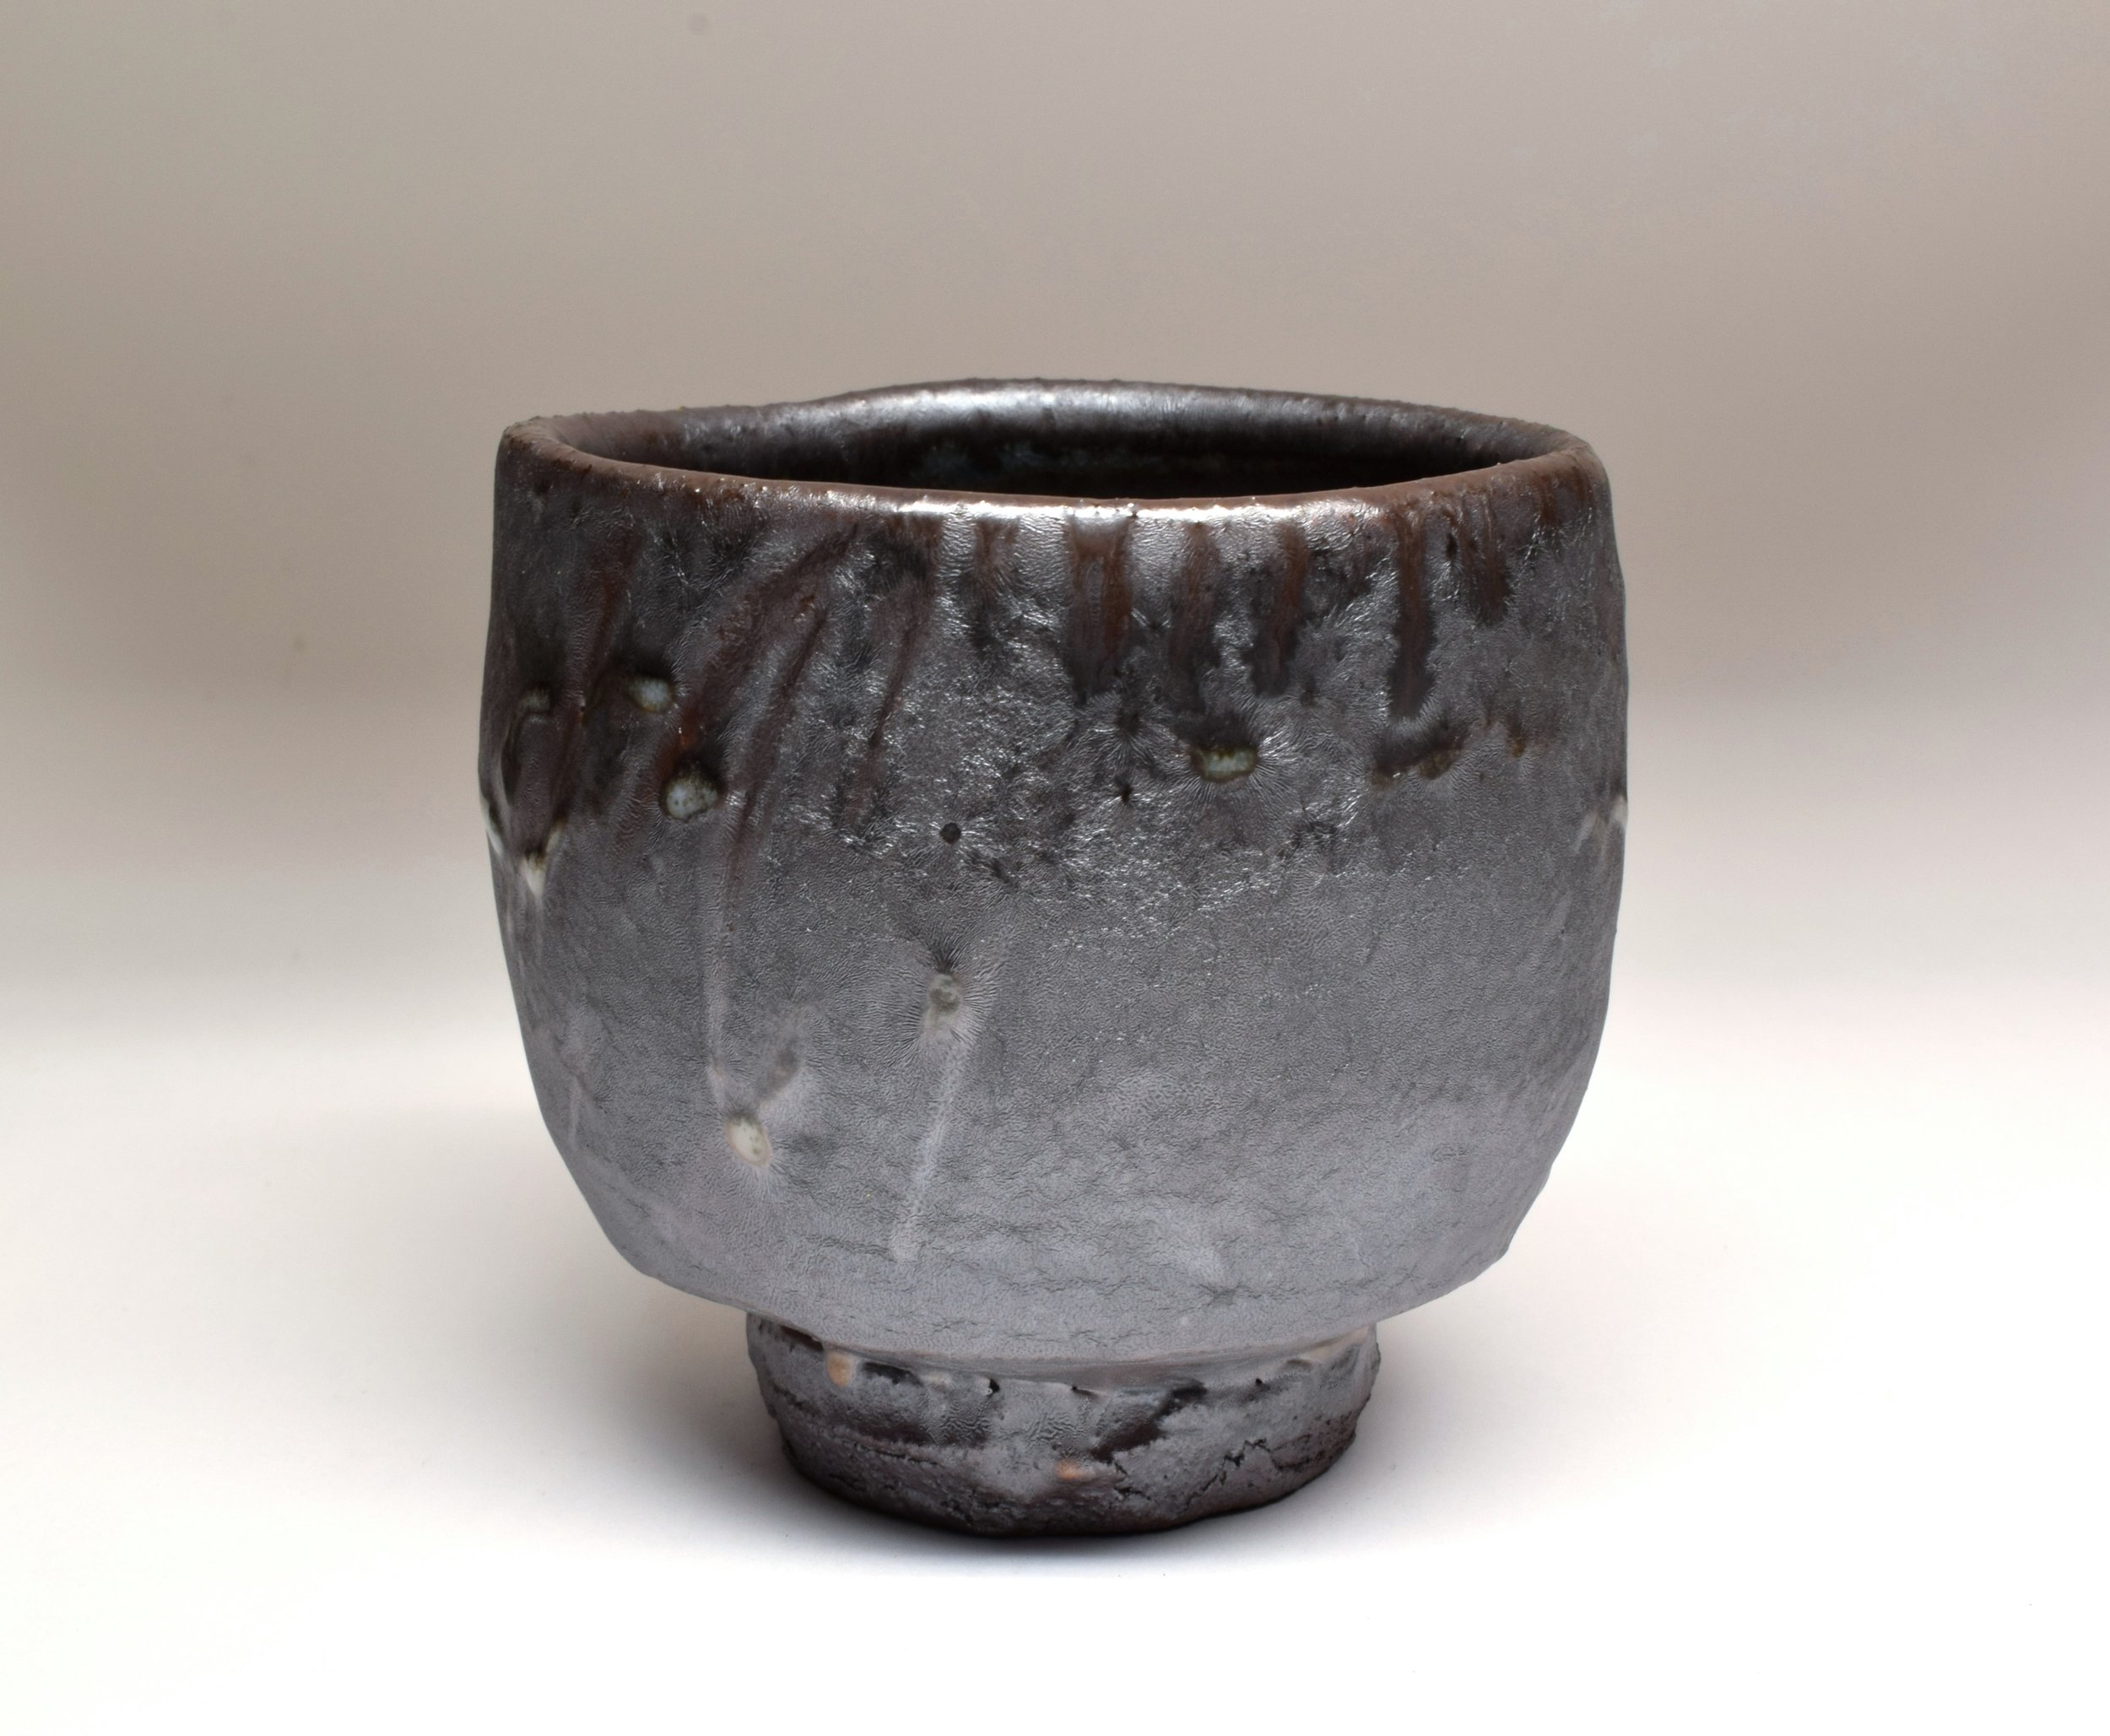 Salt glazed wood-fired stoneware    Photo credit:  Courtesy of the artist